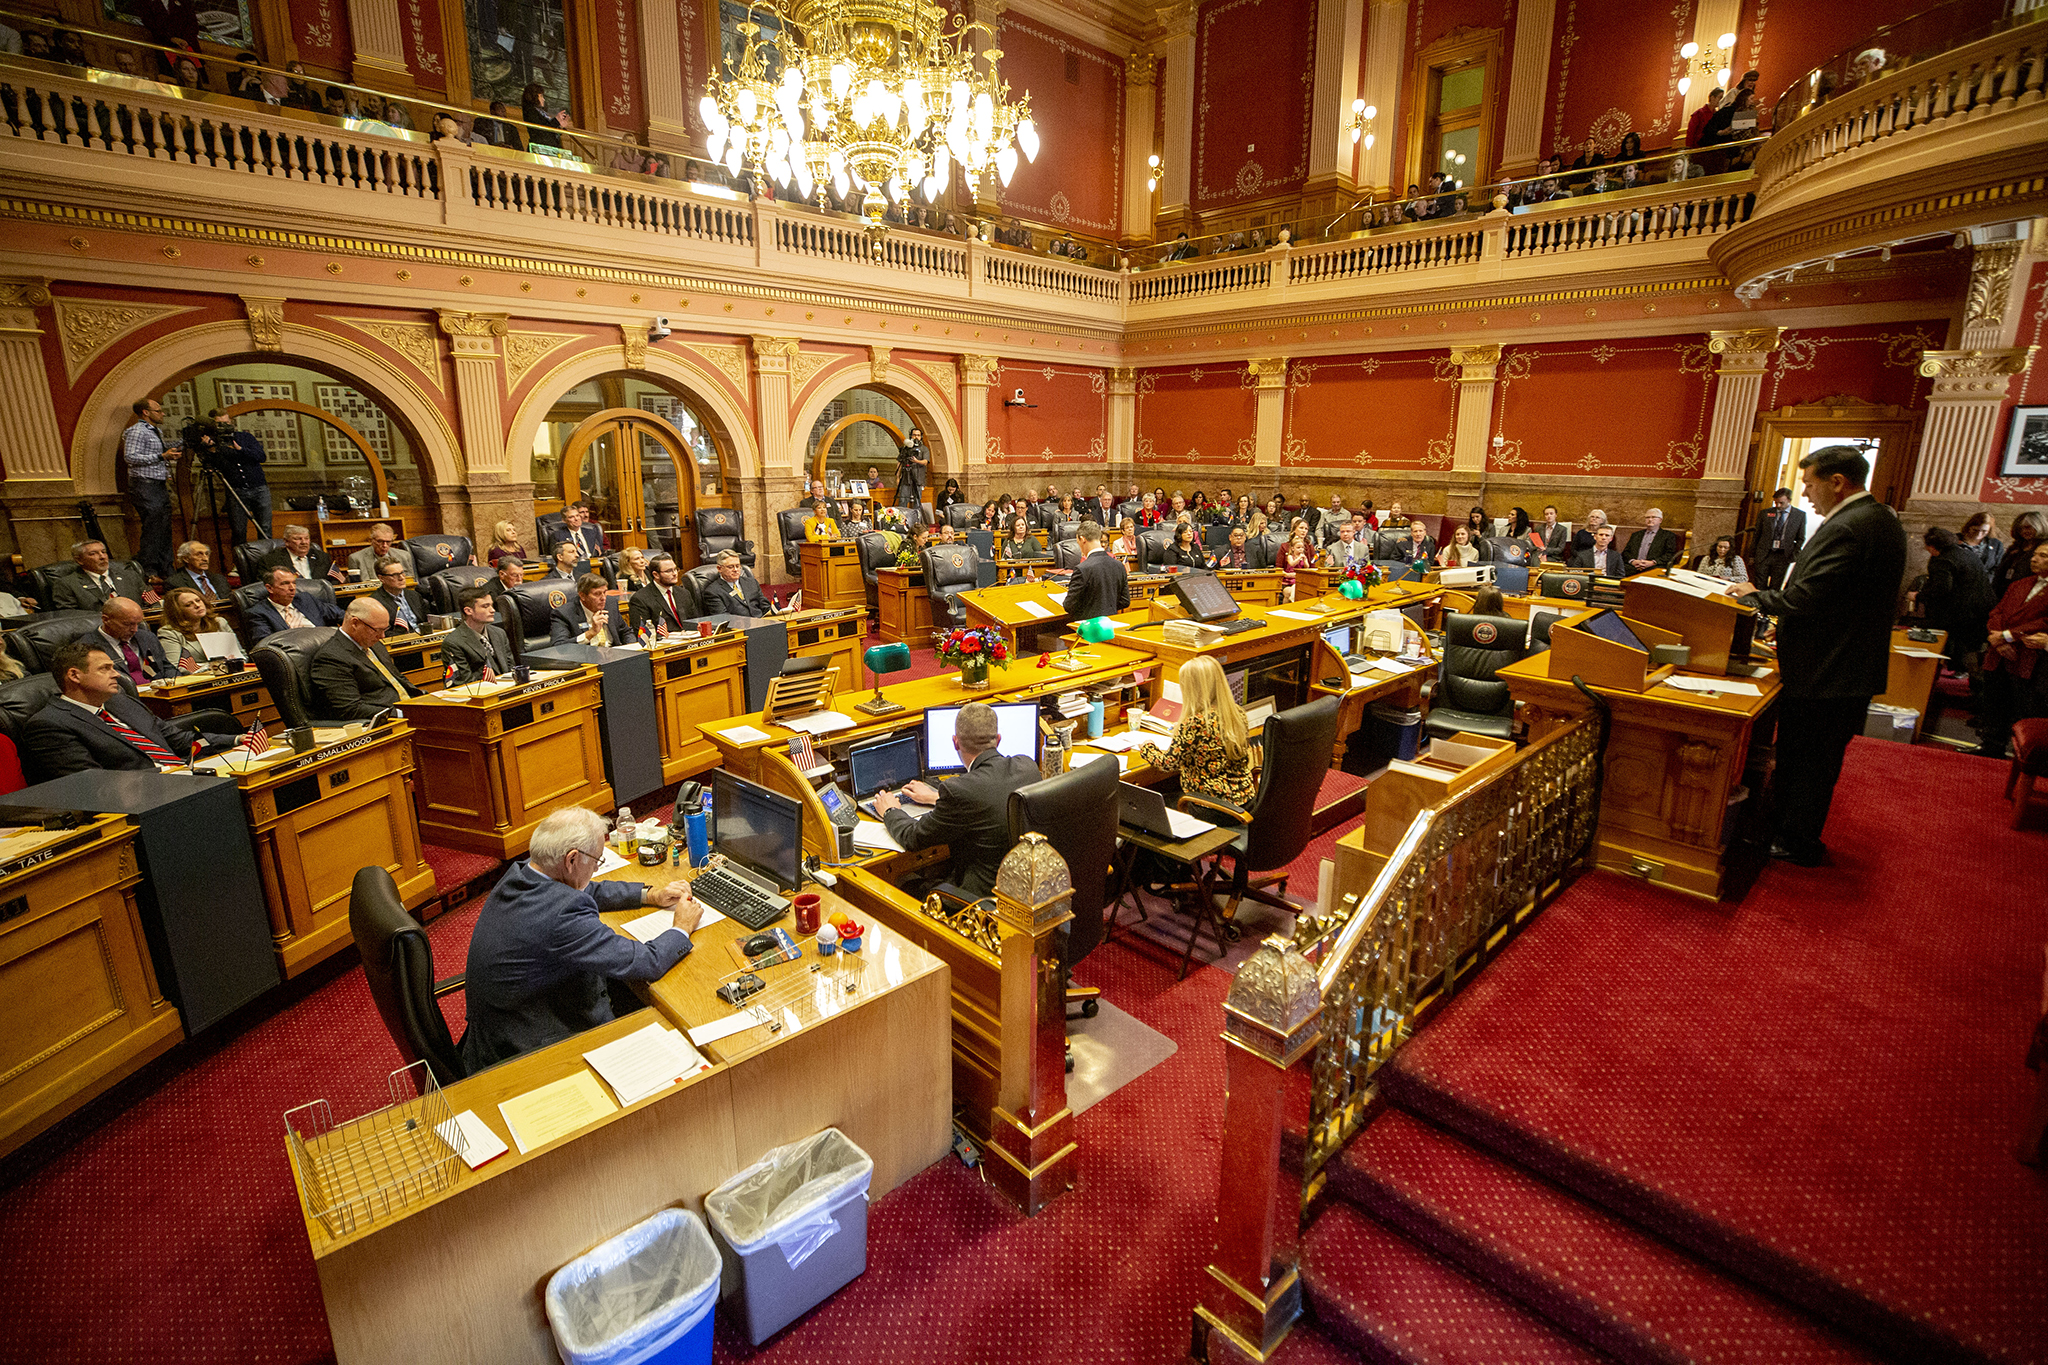 Senate President Leroy Garcia speaks at the podium on the first day of the 2020 legislative session at the Colorado State Capitol. Jan. 8, 2020.